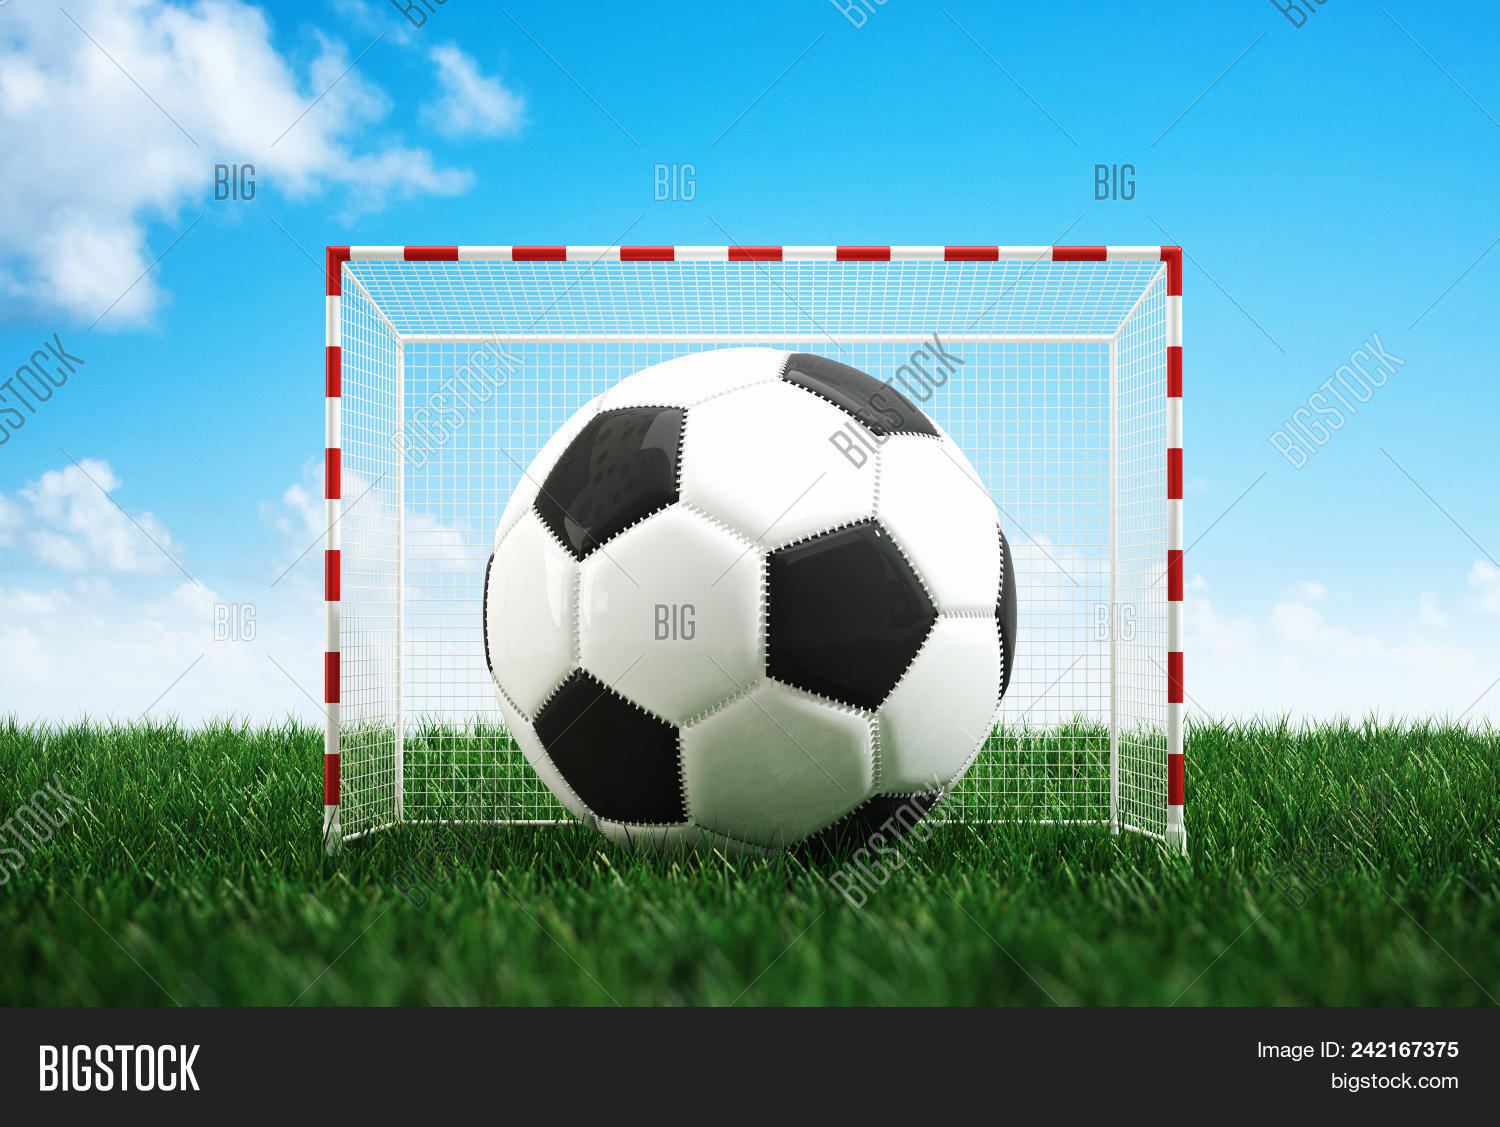 99baa3887 Large soccer ball filling small goalposts on fresh green grass on a sports  field against a